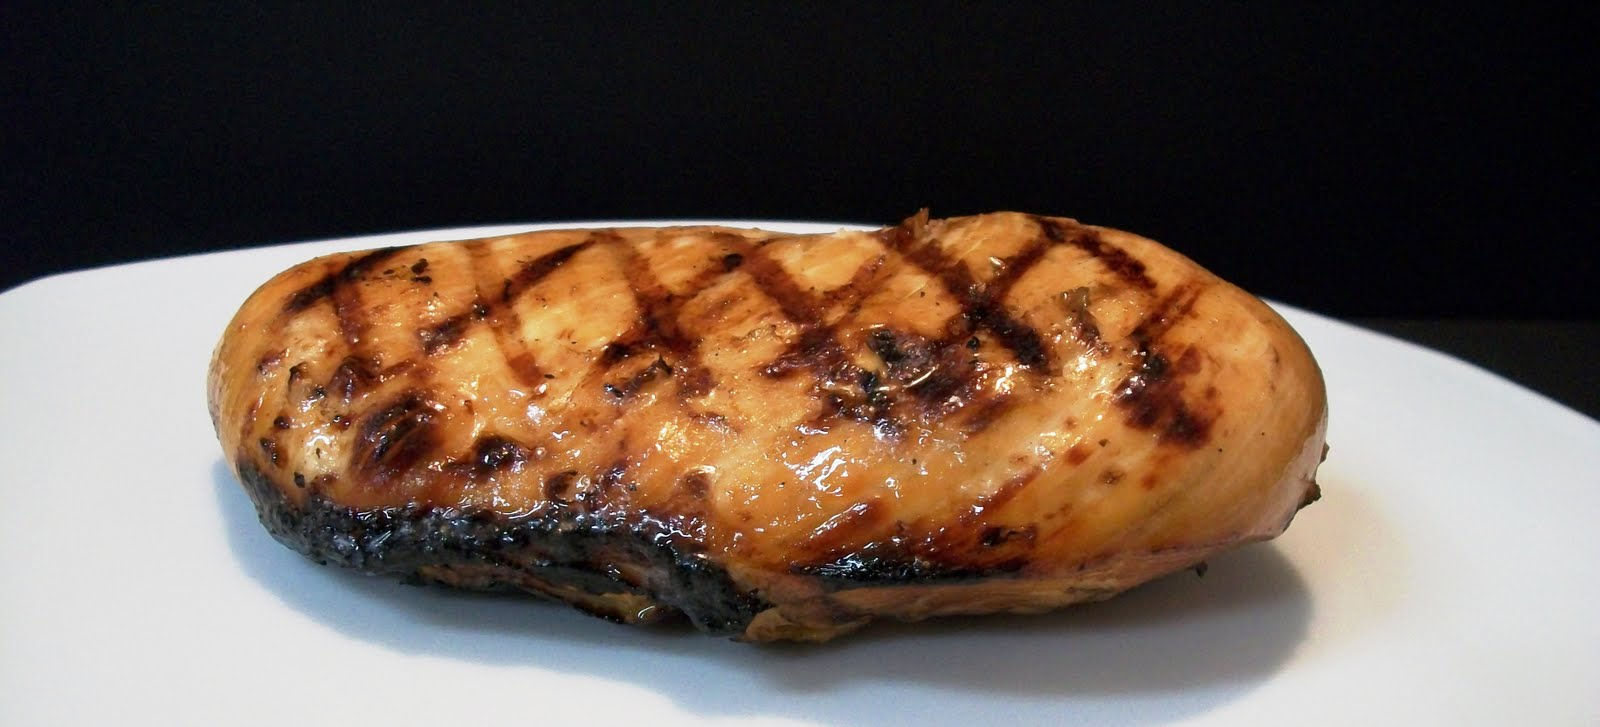 My Kind of Cooking: Recipe: Grilled Orange Chicken